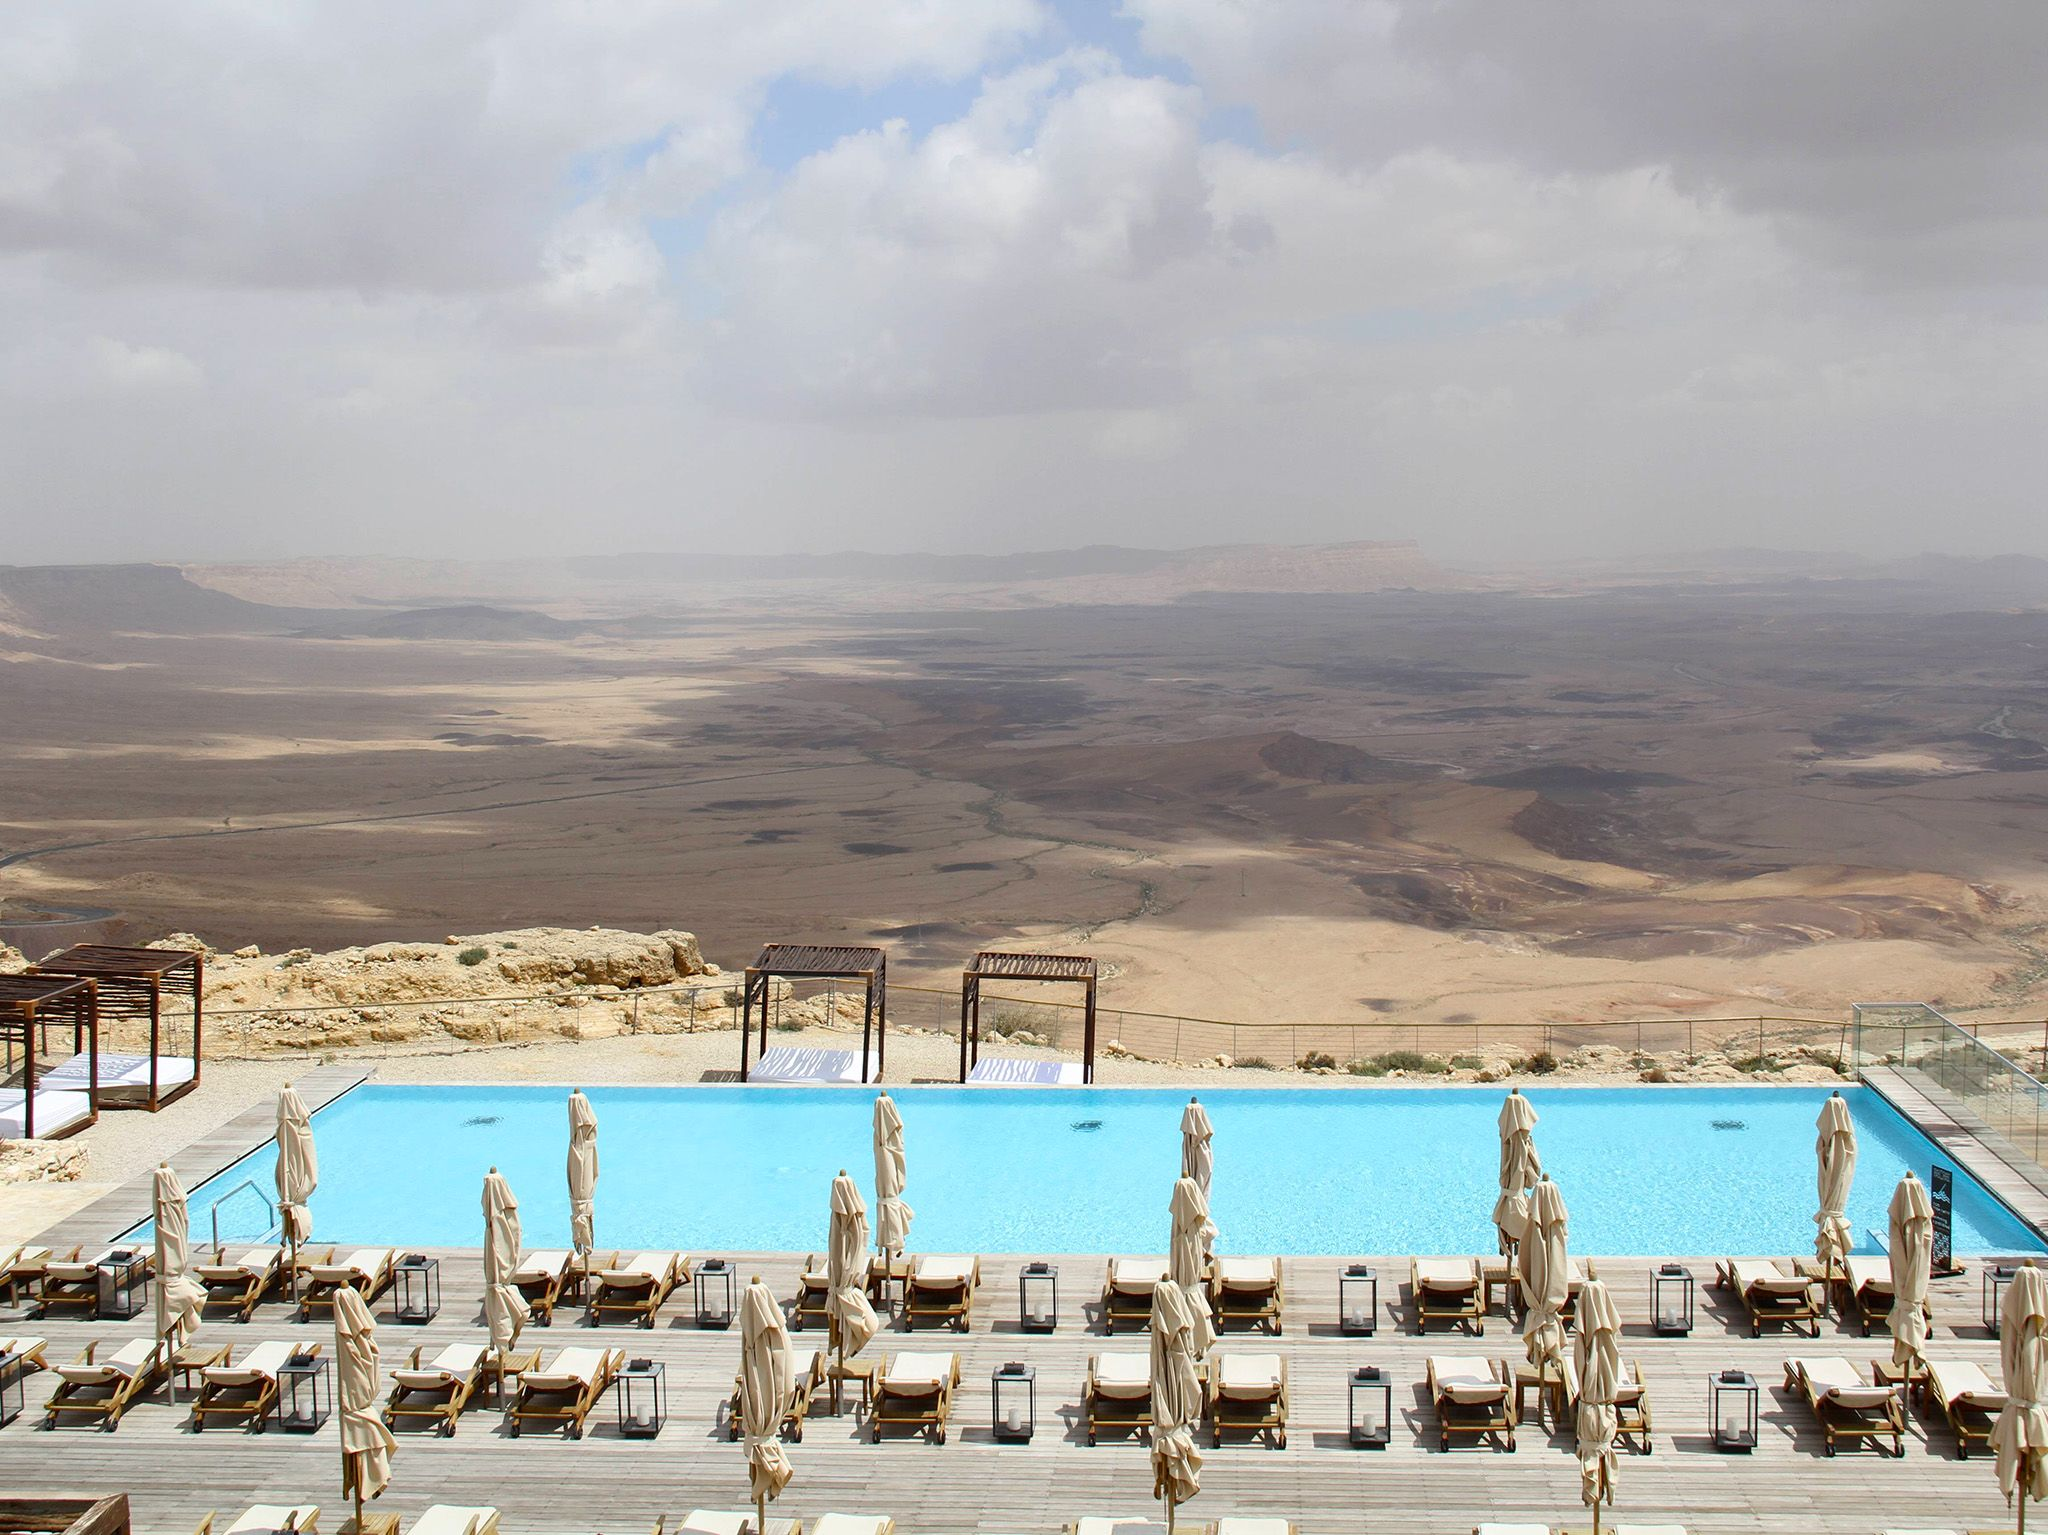 Israel: Outdoor pool at the Beresheet Hotel, located in Israel's Negev Desert. This image is... [Photo of the day - 八月 2017]